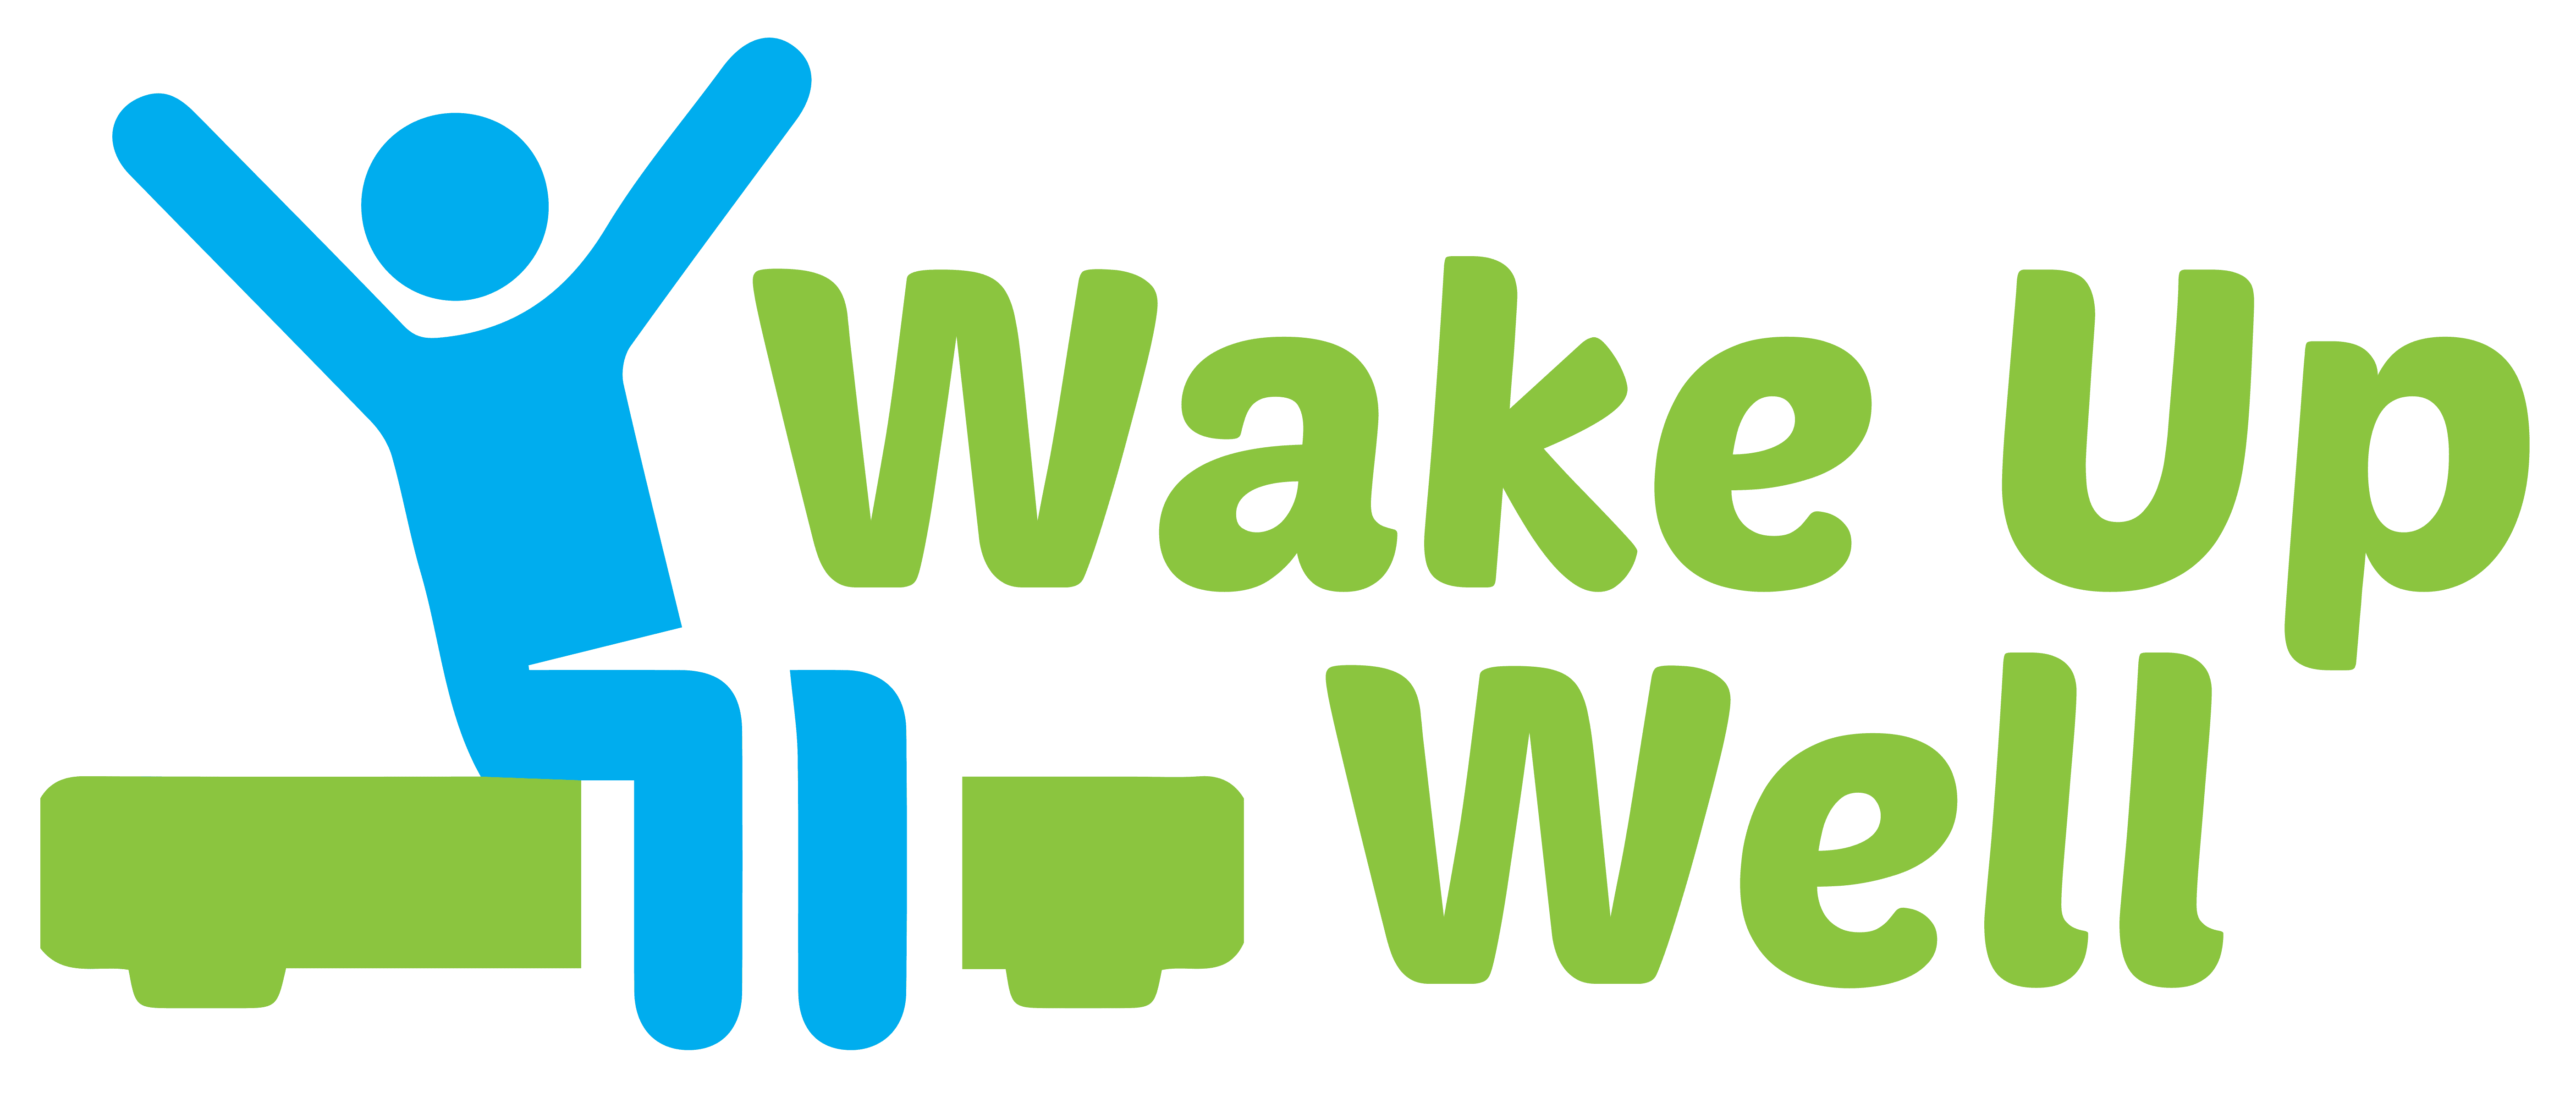 wake-up-well-logo-Final